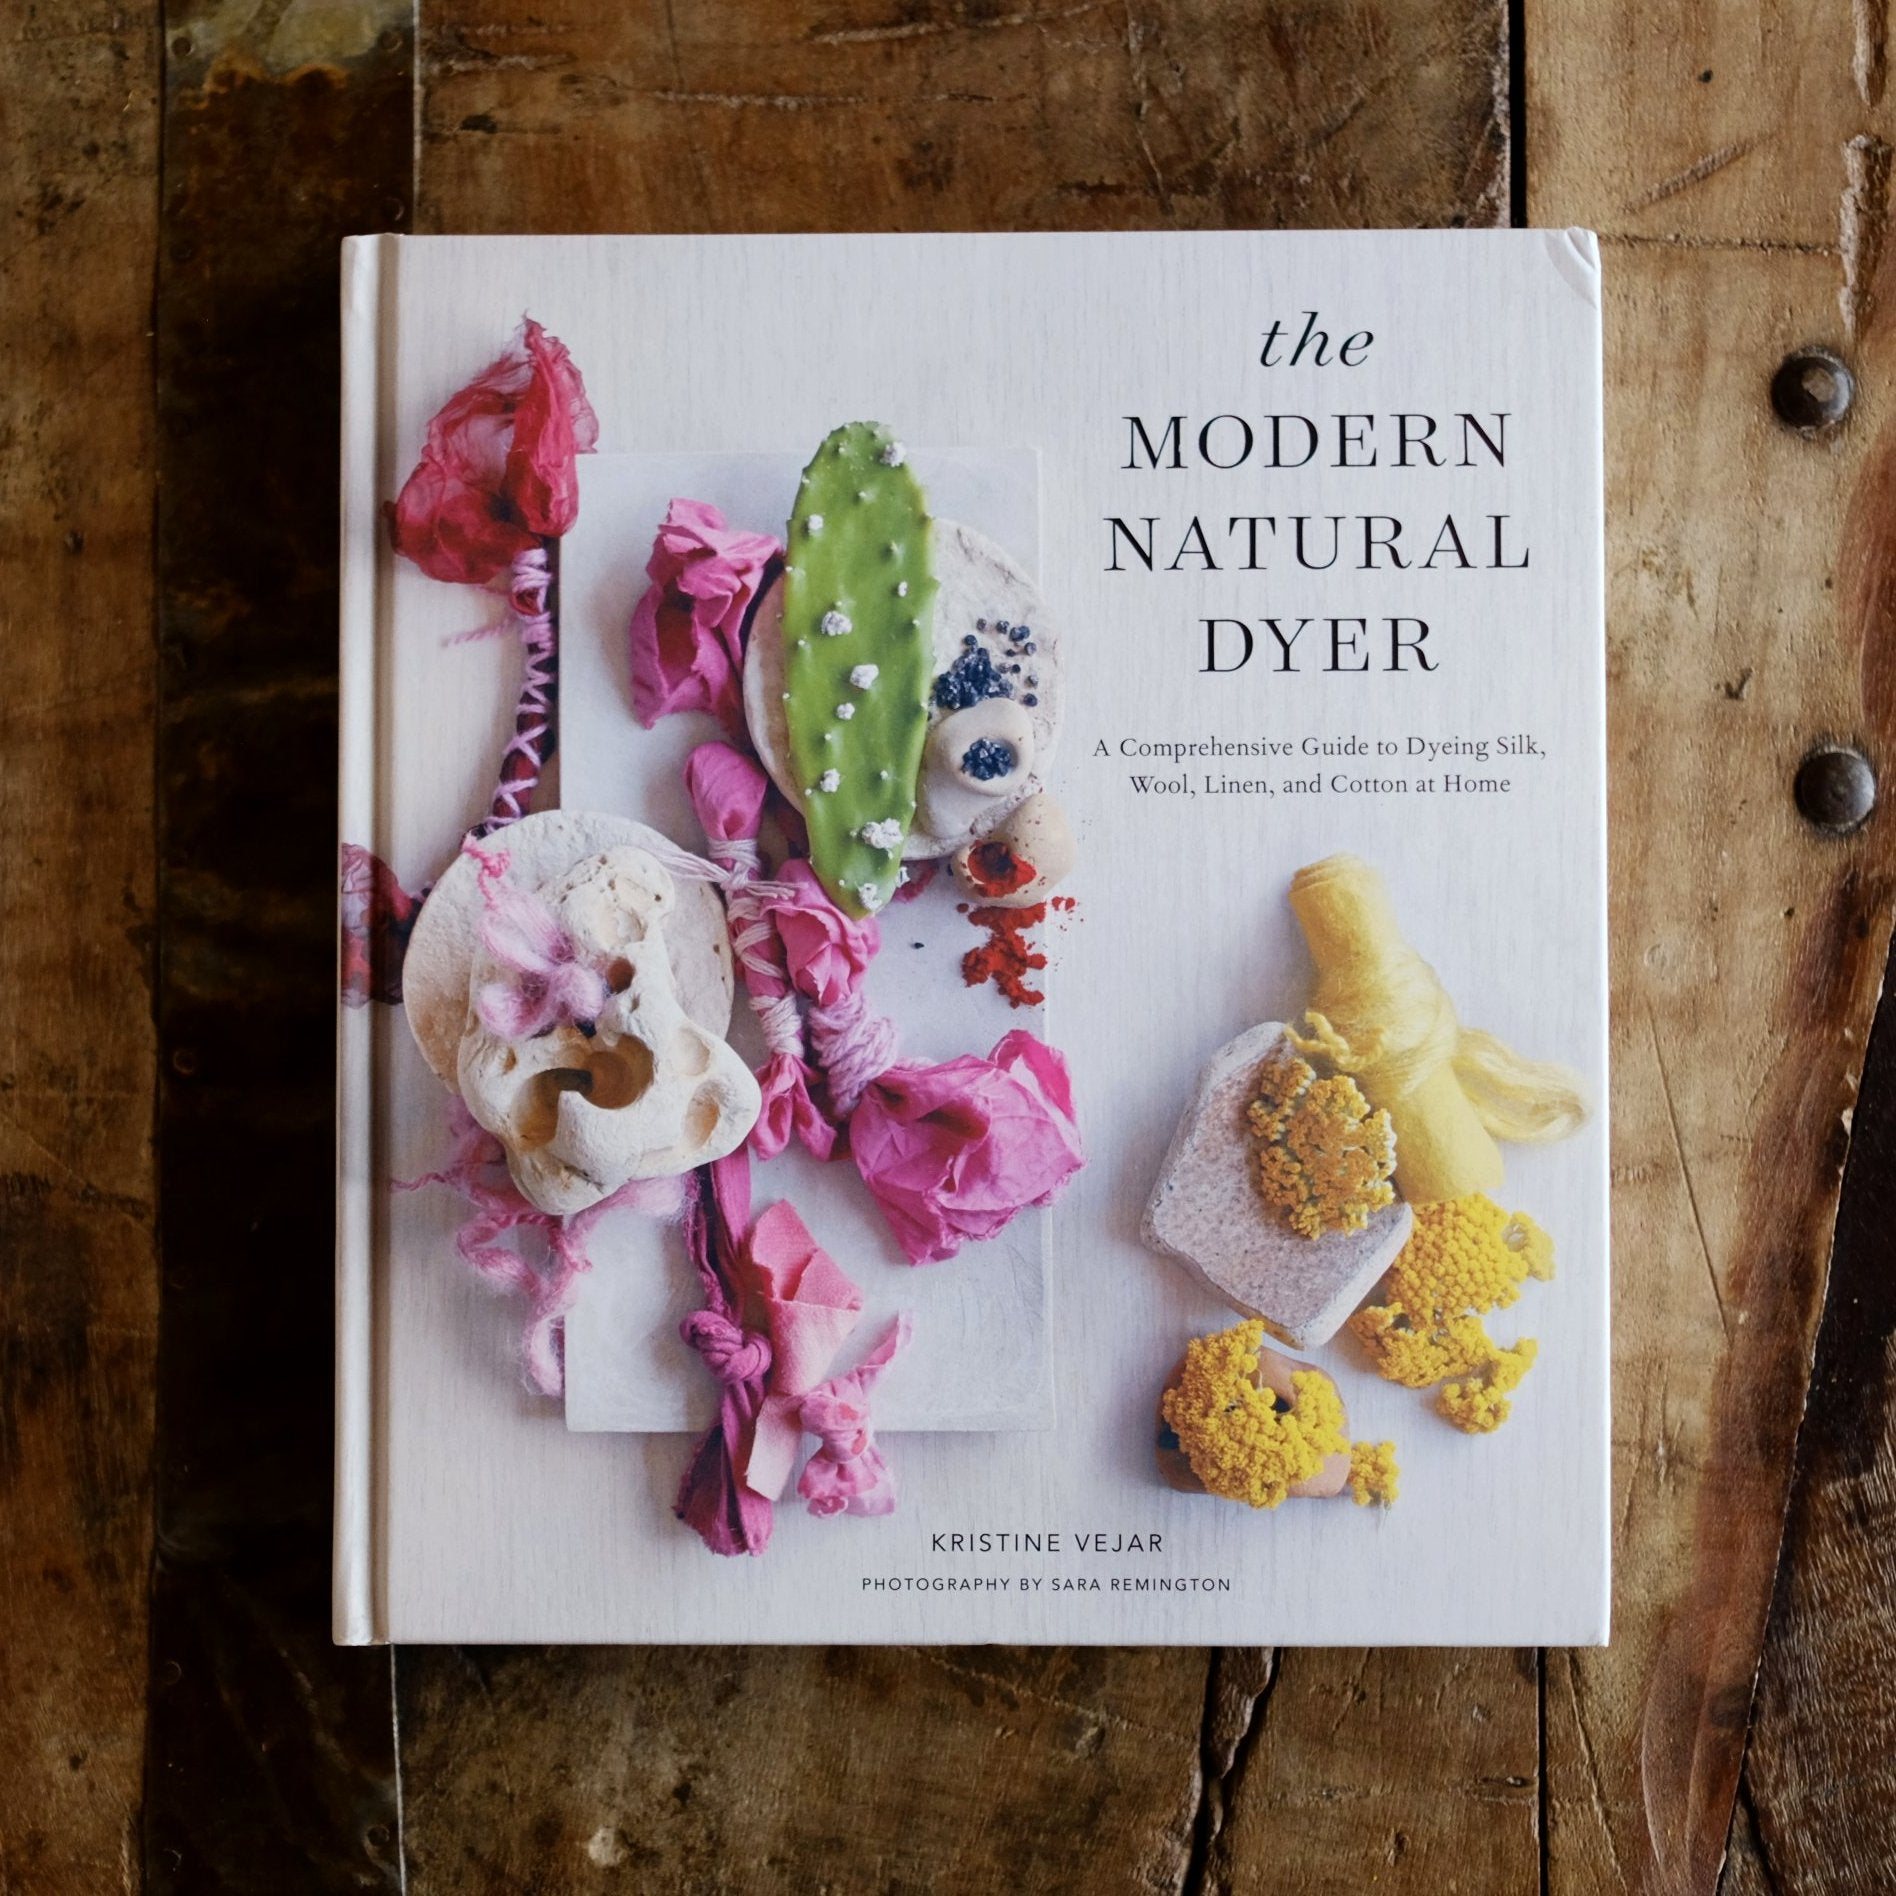 The Modern Natural Dyer by Kristine Vejar - Restocked!